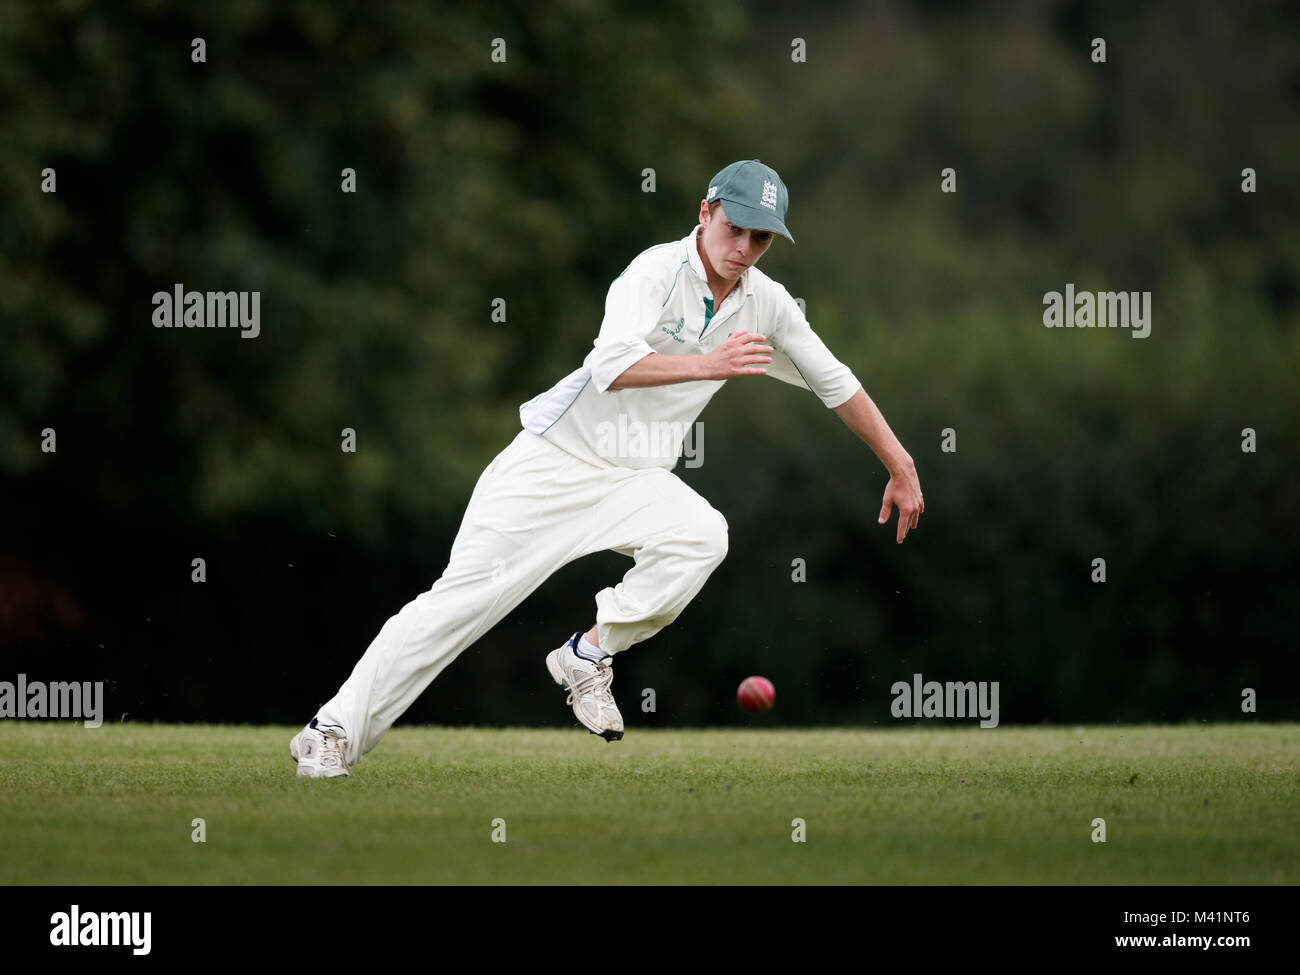 Cricket, fielder in action. - Stock Image